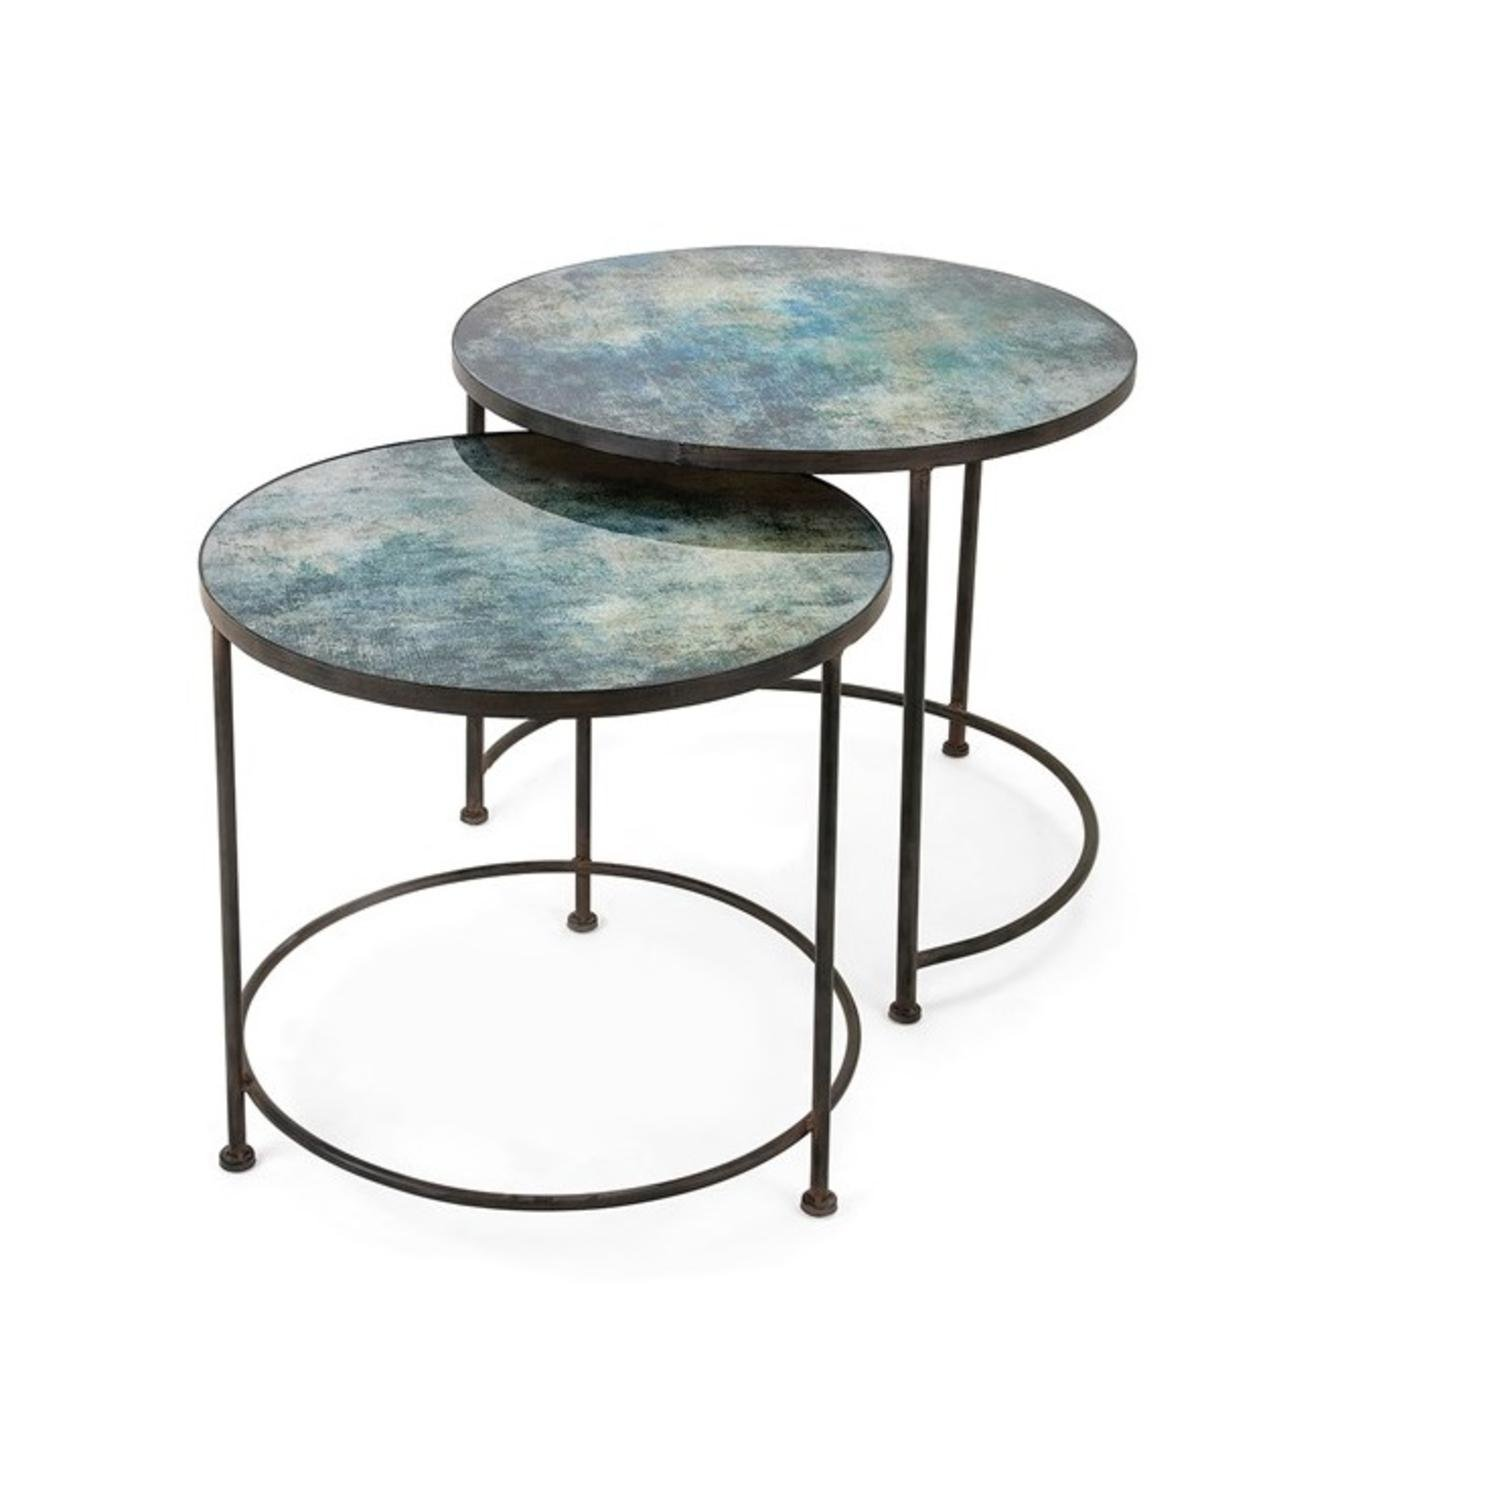 Set of 2 Teal Blue Paxton Metal and Printed Glass Decorative Nesting Tables 33''